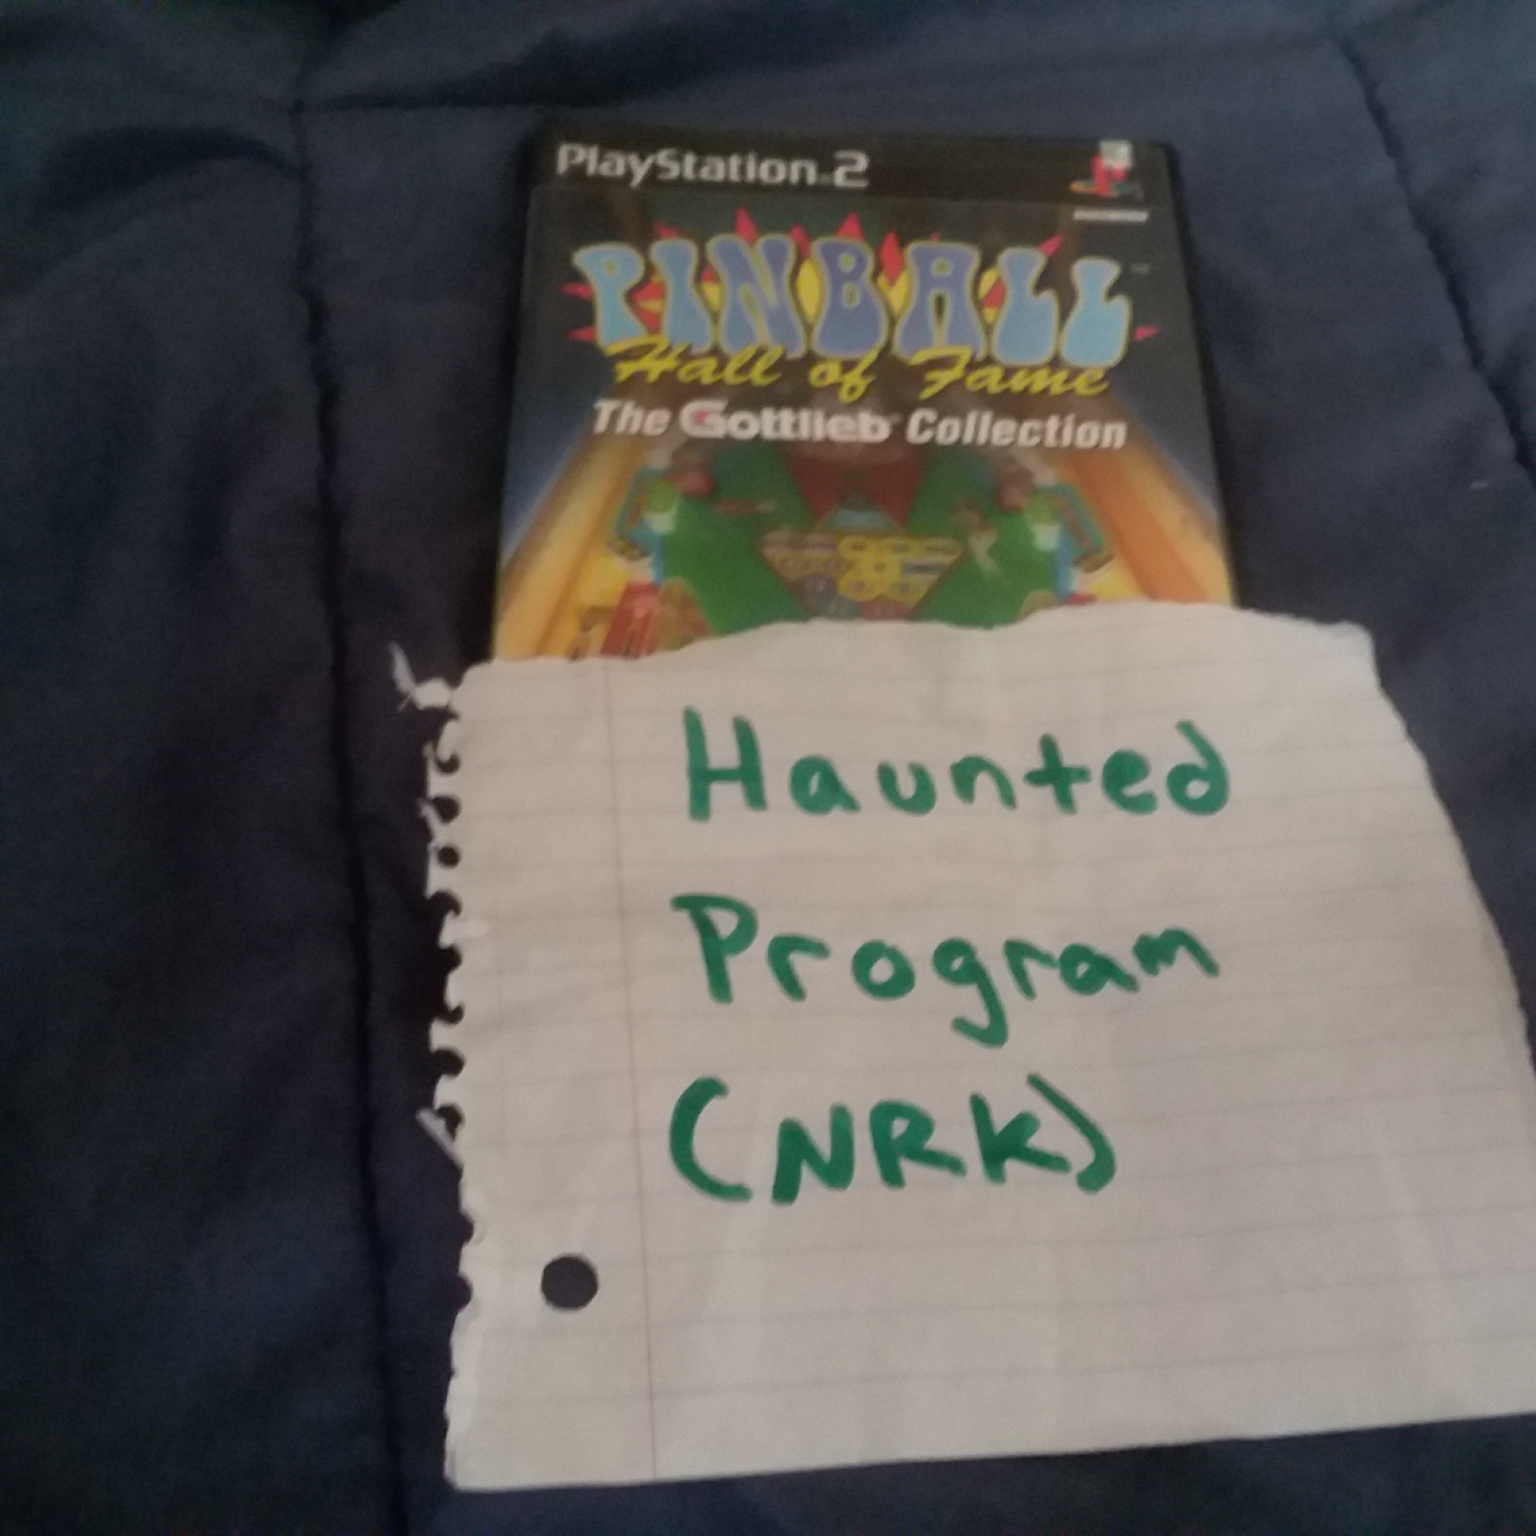 Hauntedprogram: Pinball Hall Of Fame: The Gottlieb Collection [Tournament Mode] (Playstation 2) 40 points on 2020-11-11 20:29:50